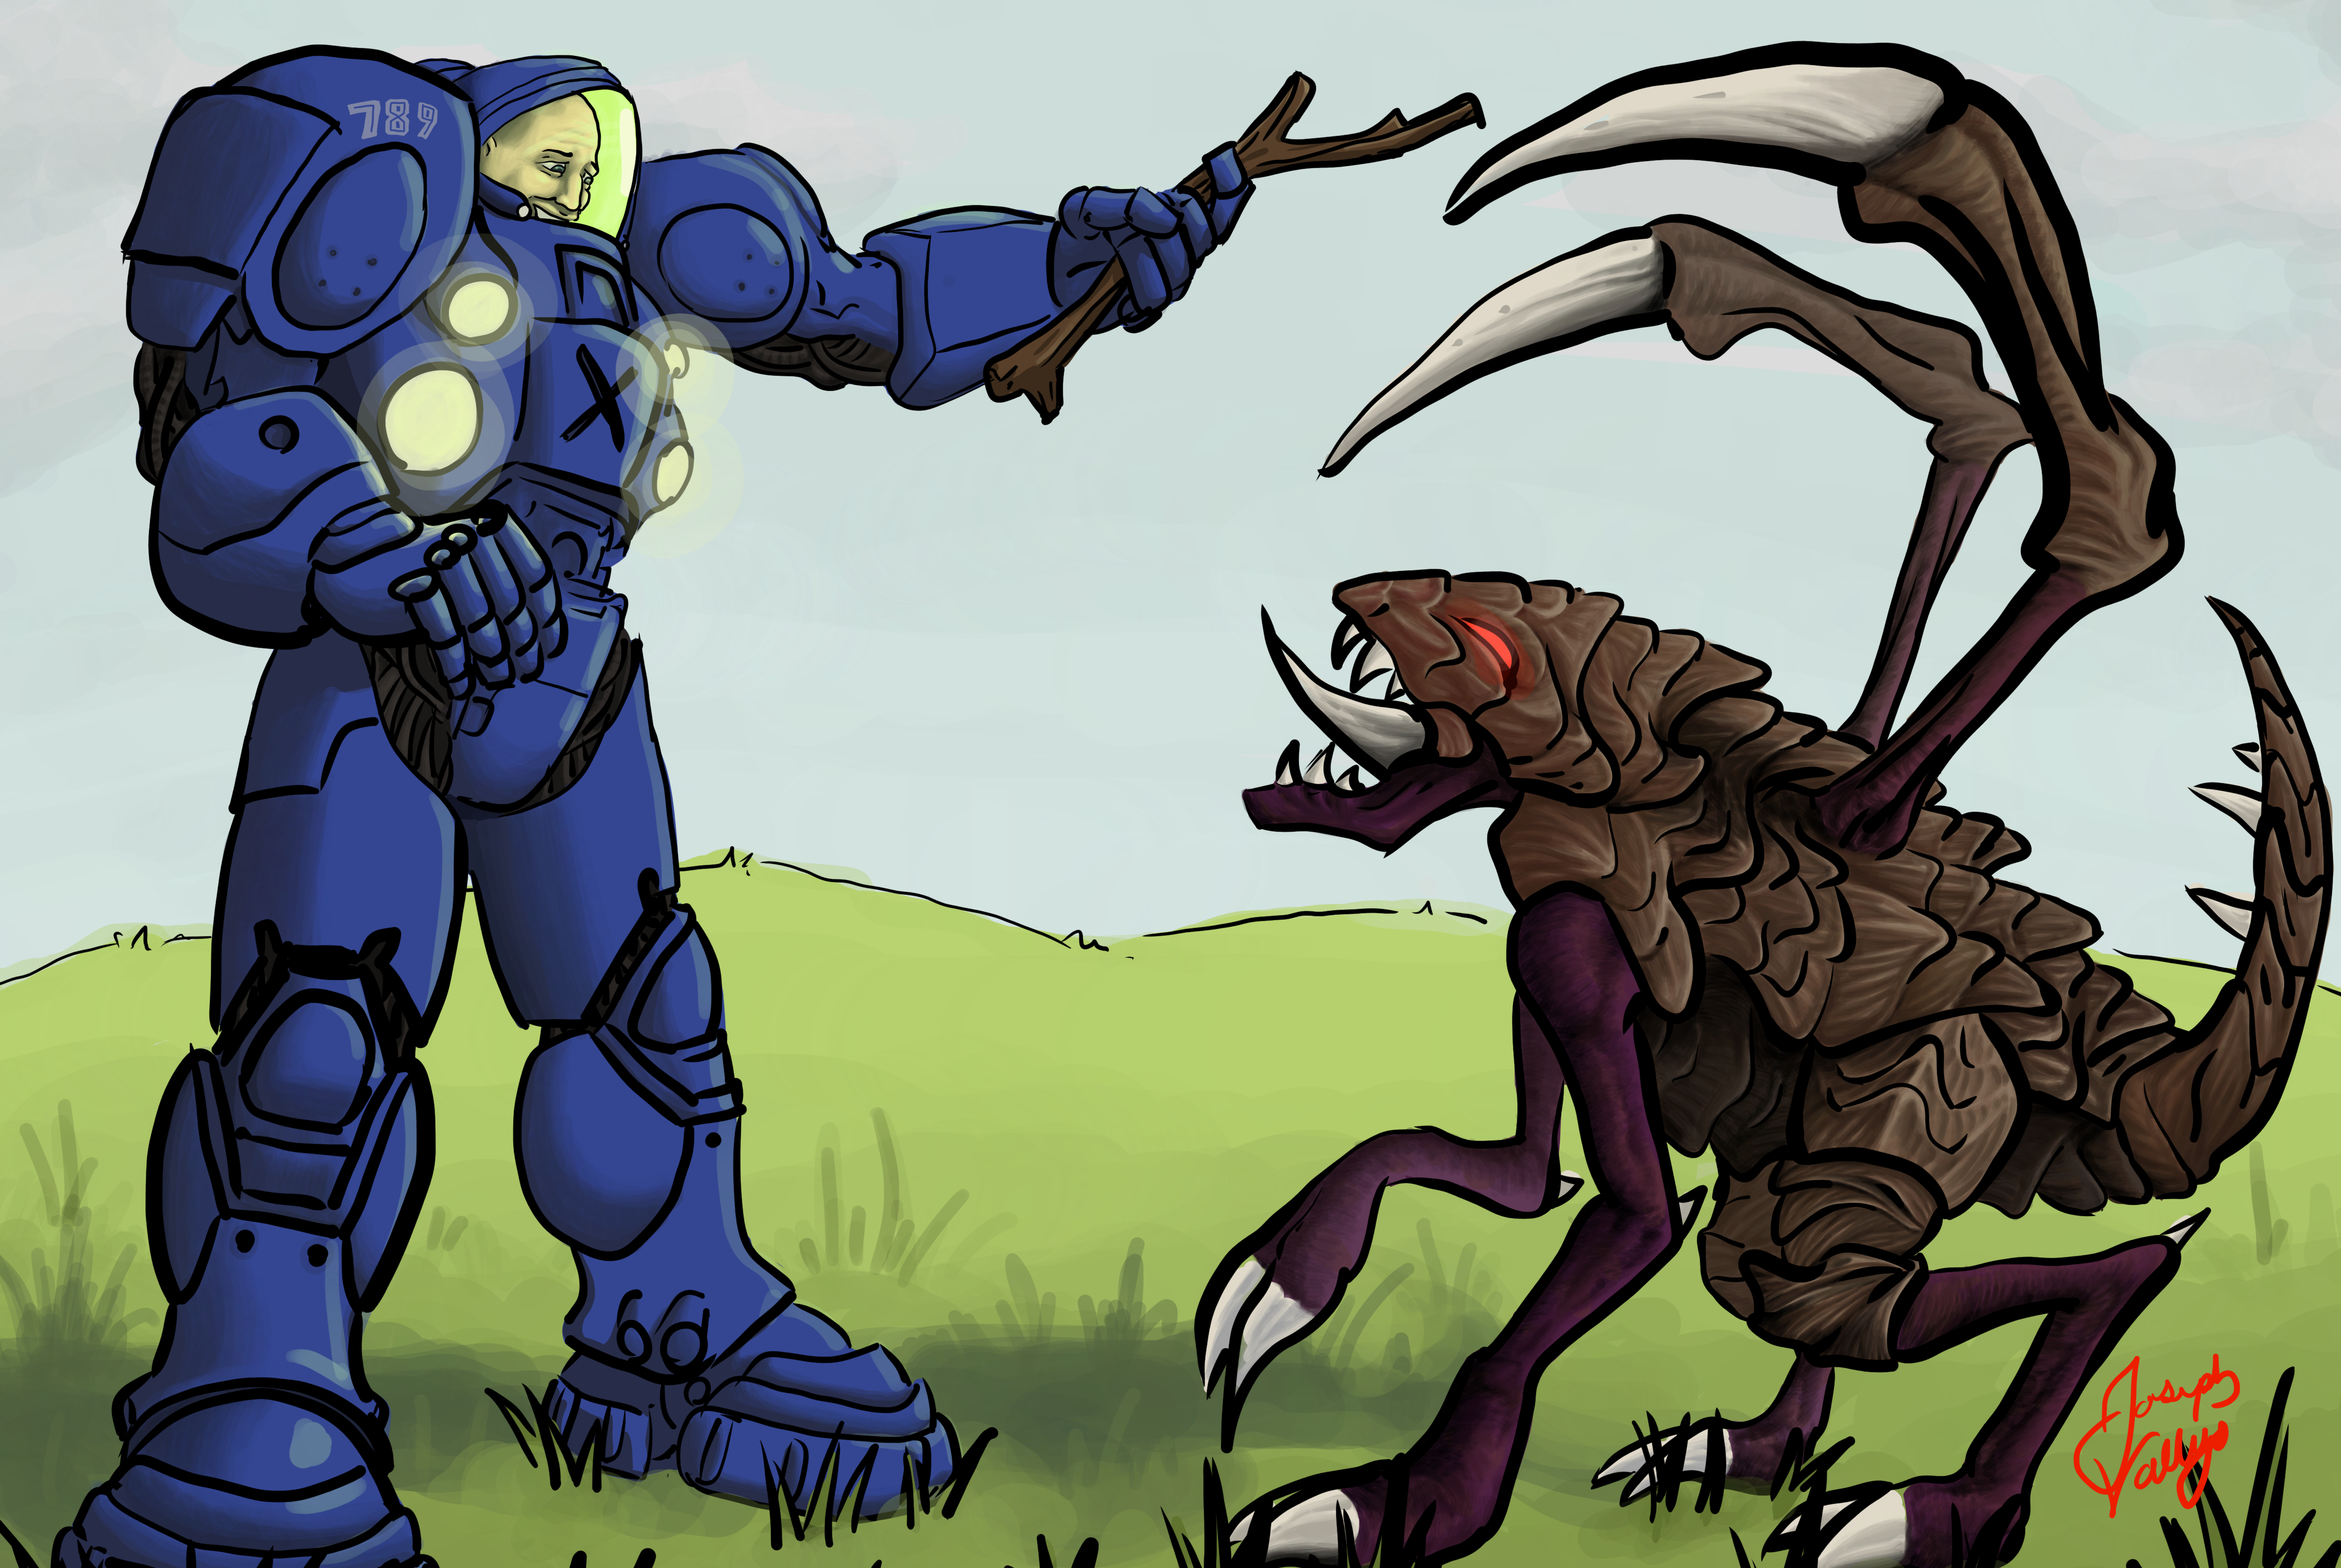 Terran Playing With Zergling